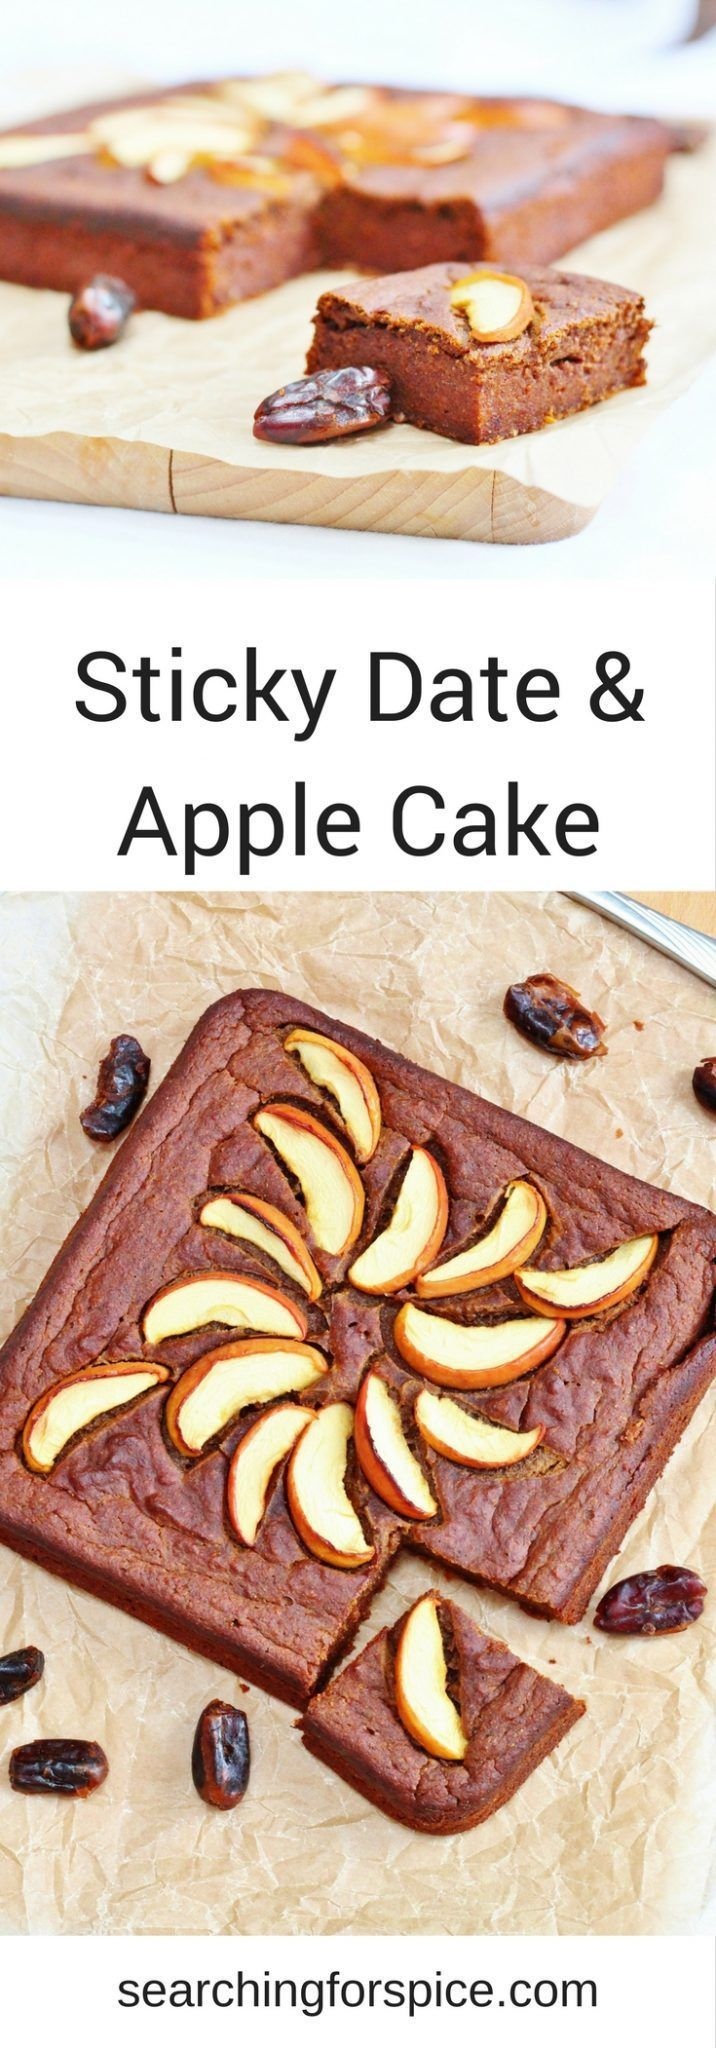 Sugar free sticky date and apple cake recipe. This healthy cake is perfect for a mid-morning or mid-afternoon snack. It's also a healthy choice after a workout